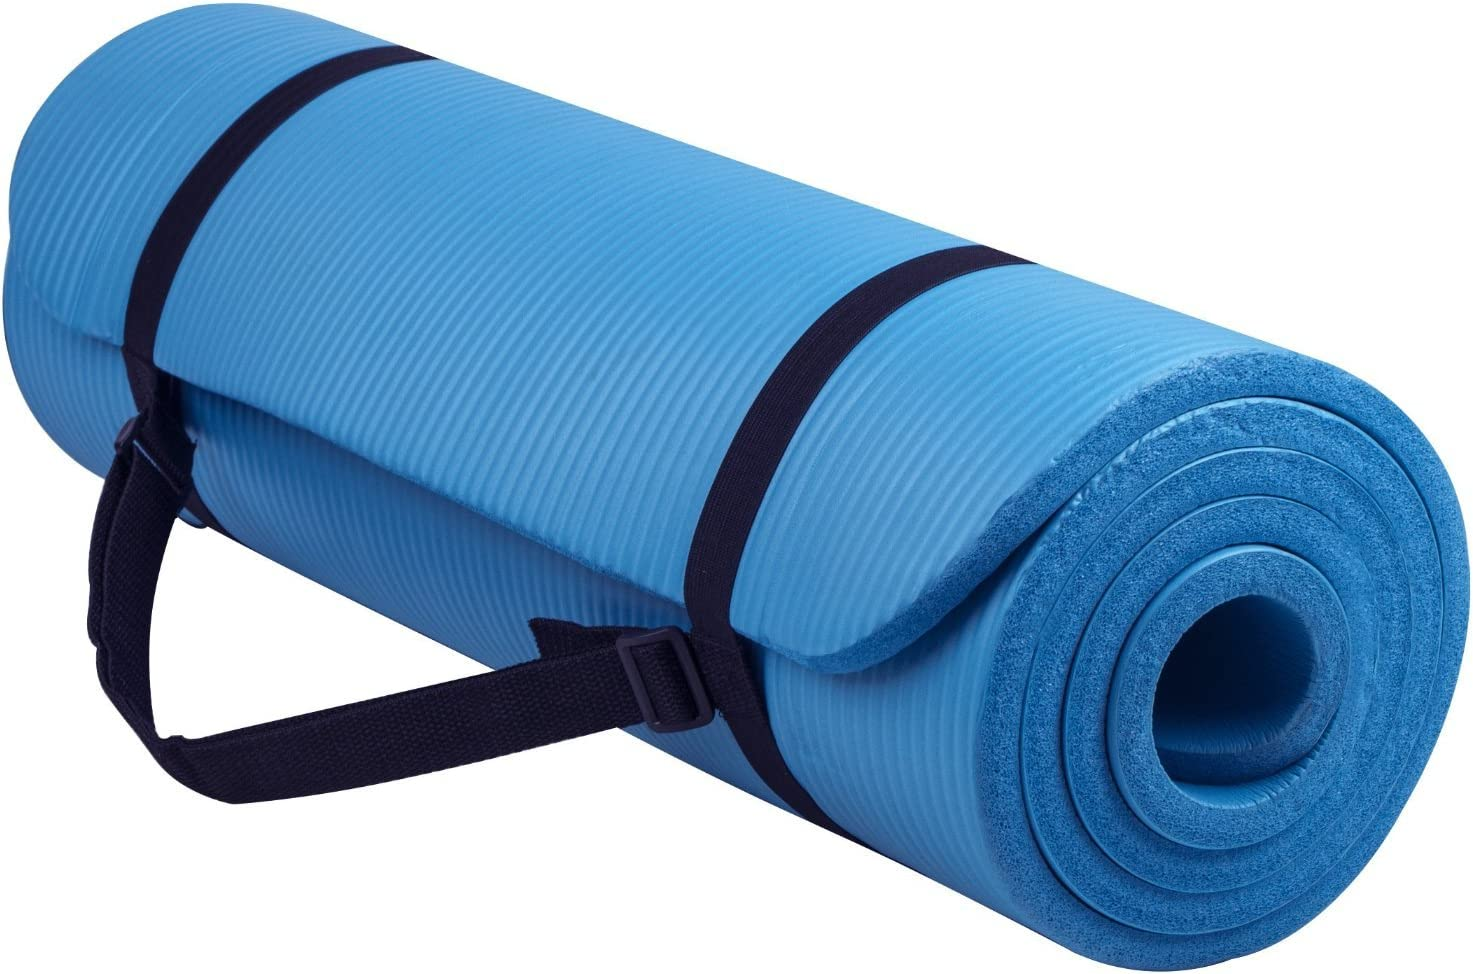 cool essential yoga mat 1//2 inch Thick high Density NBR Exercise Yoga map for Pilates Fitness /& Workout w//Carrying Strap